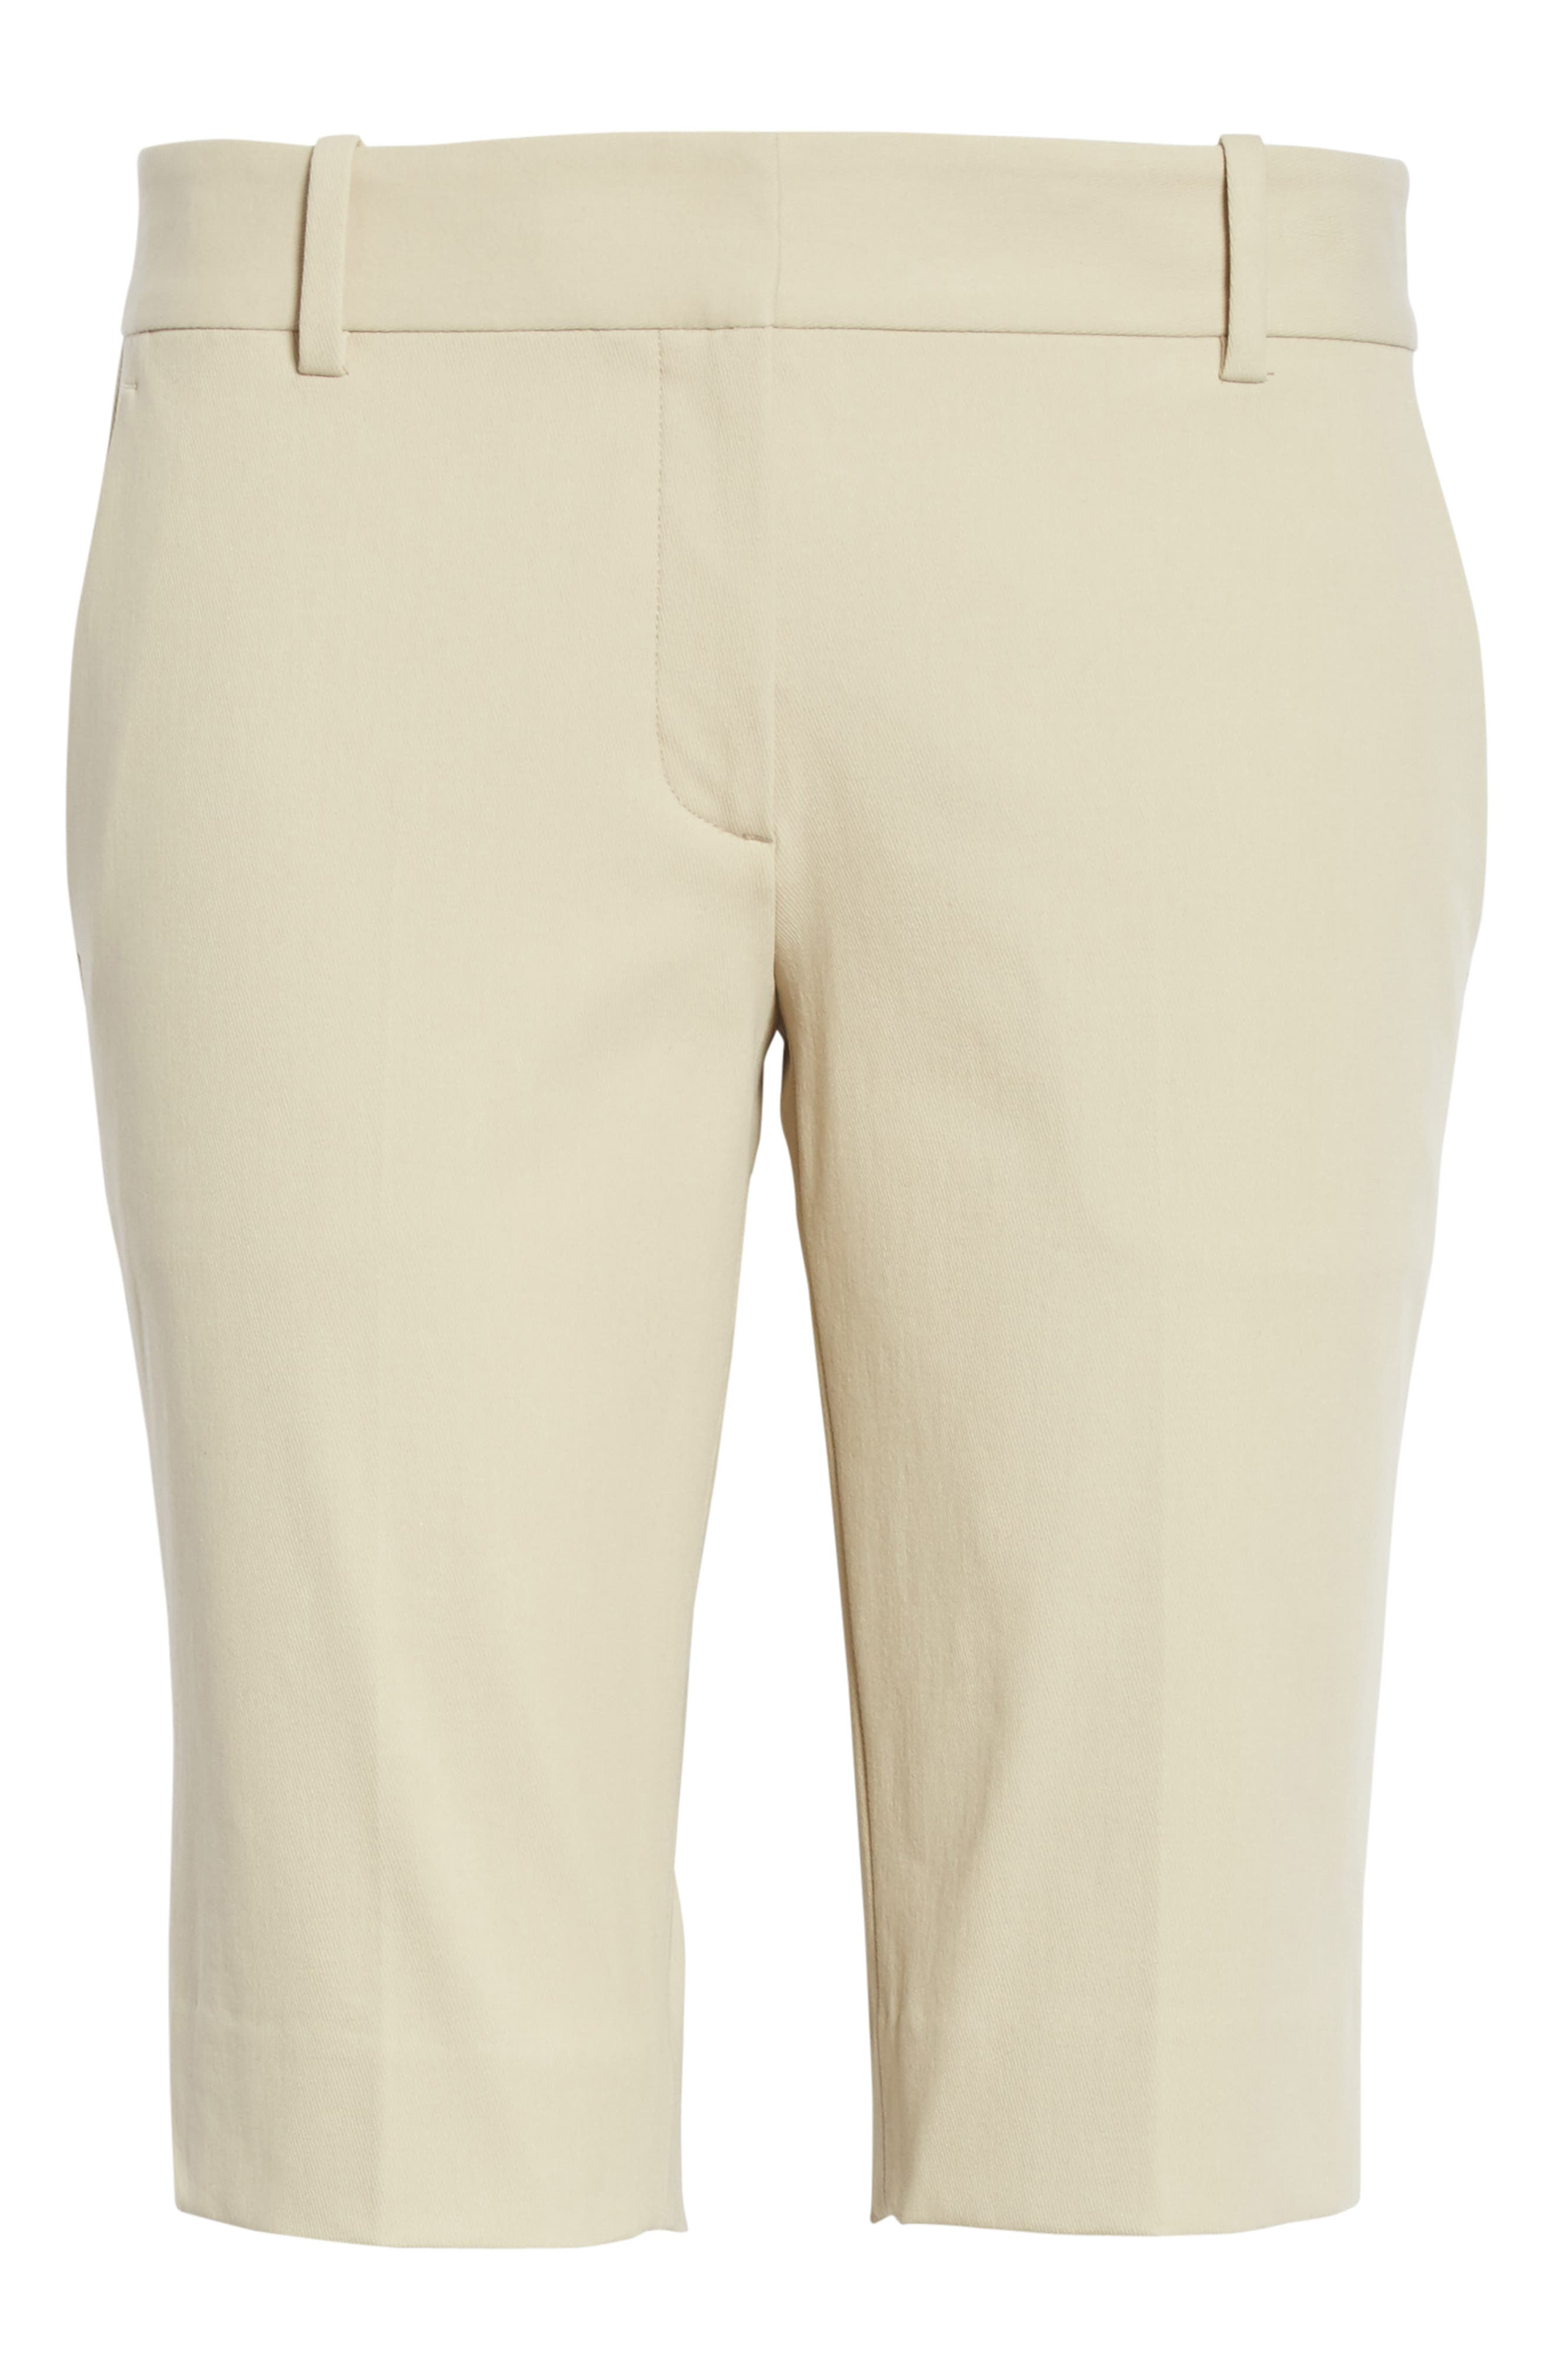 Approach Stretch Twill Slim Bermuda Shorts,                             Alternate thumbnail 6, color,                             257